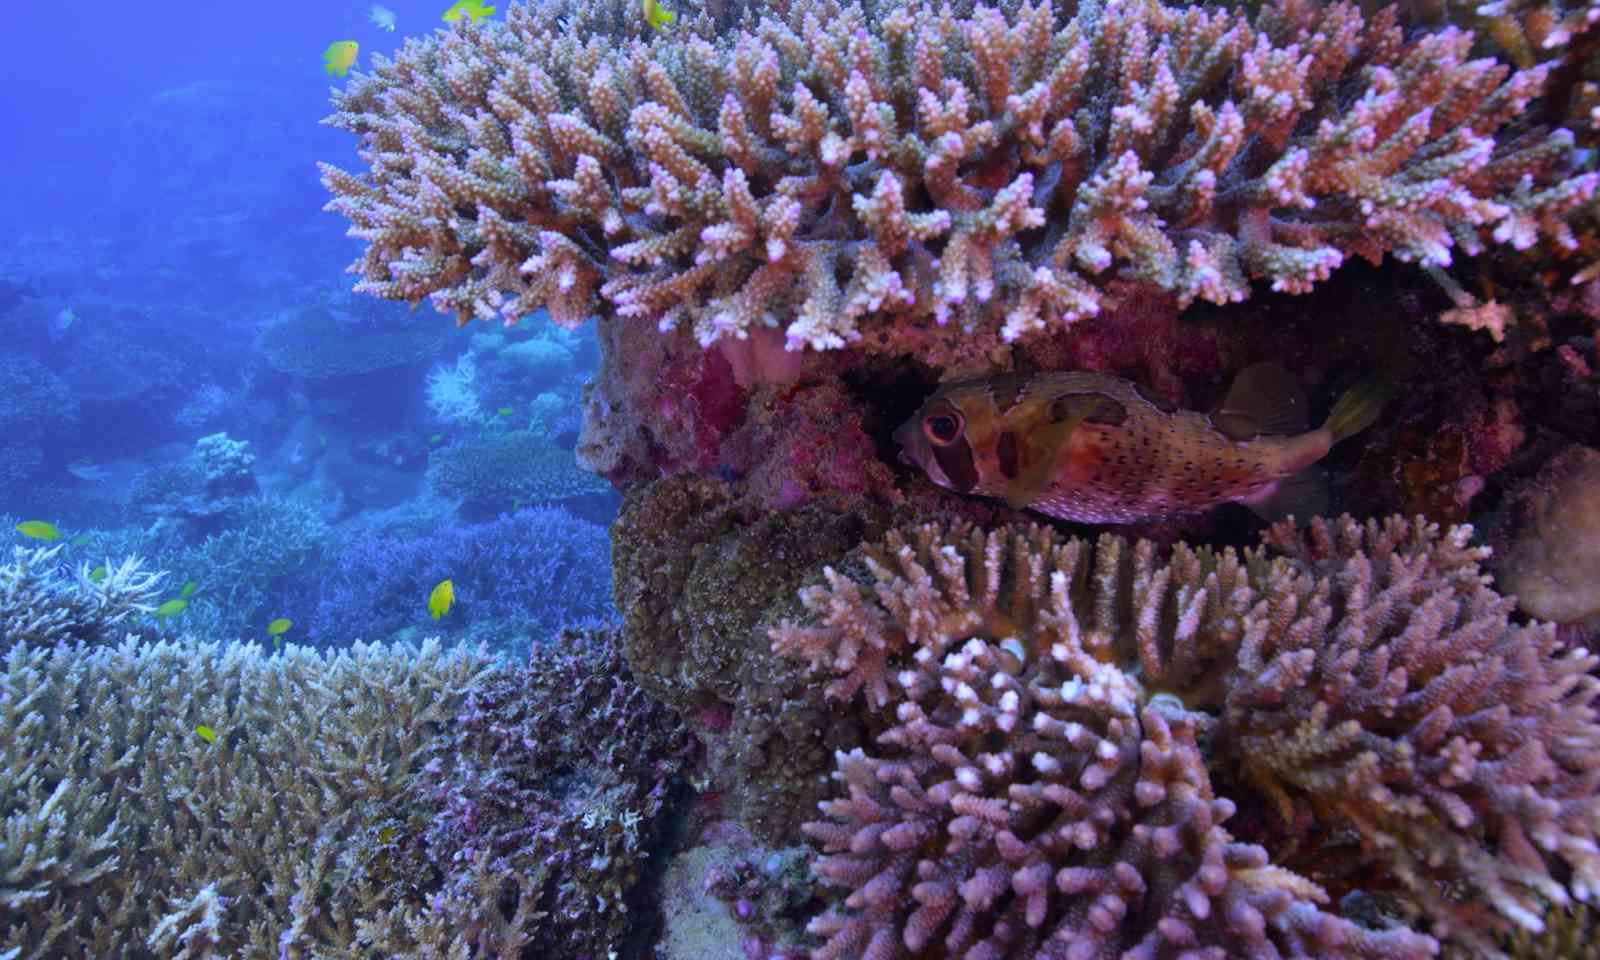 The evidence of coral bleaching (Netflix)